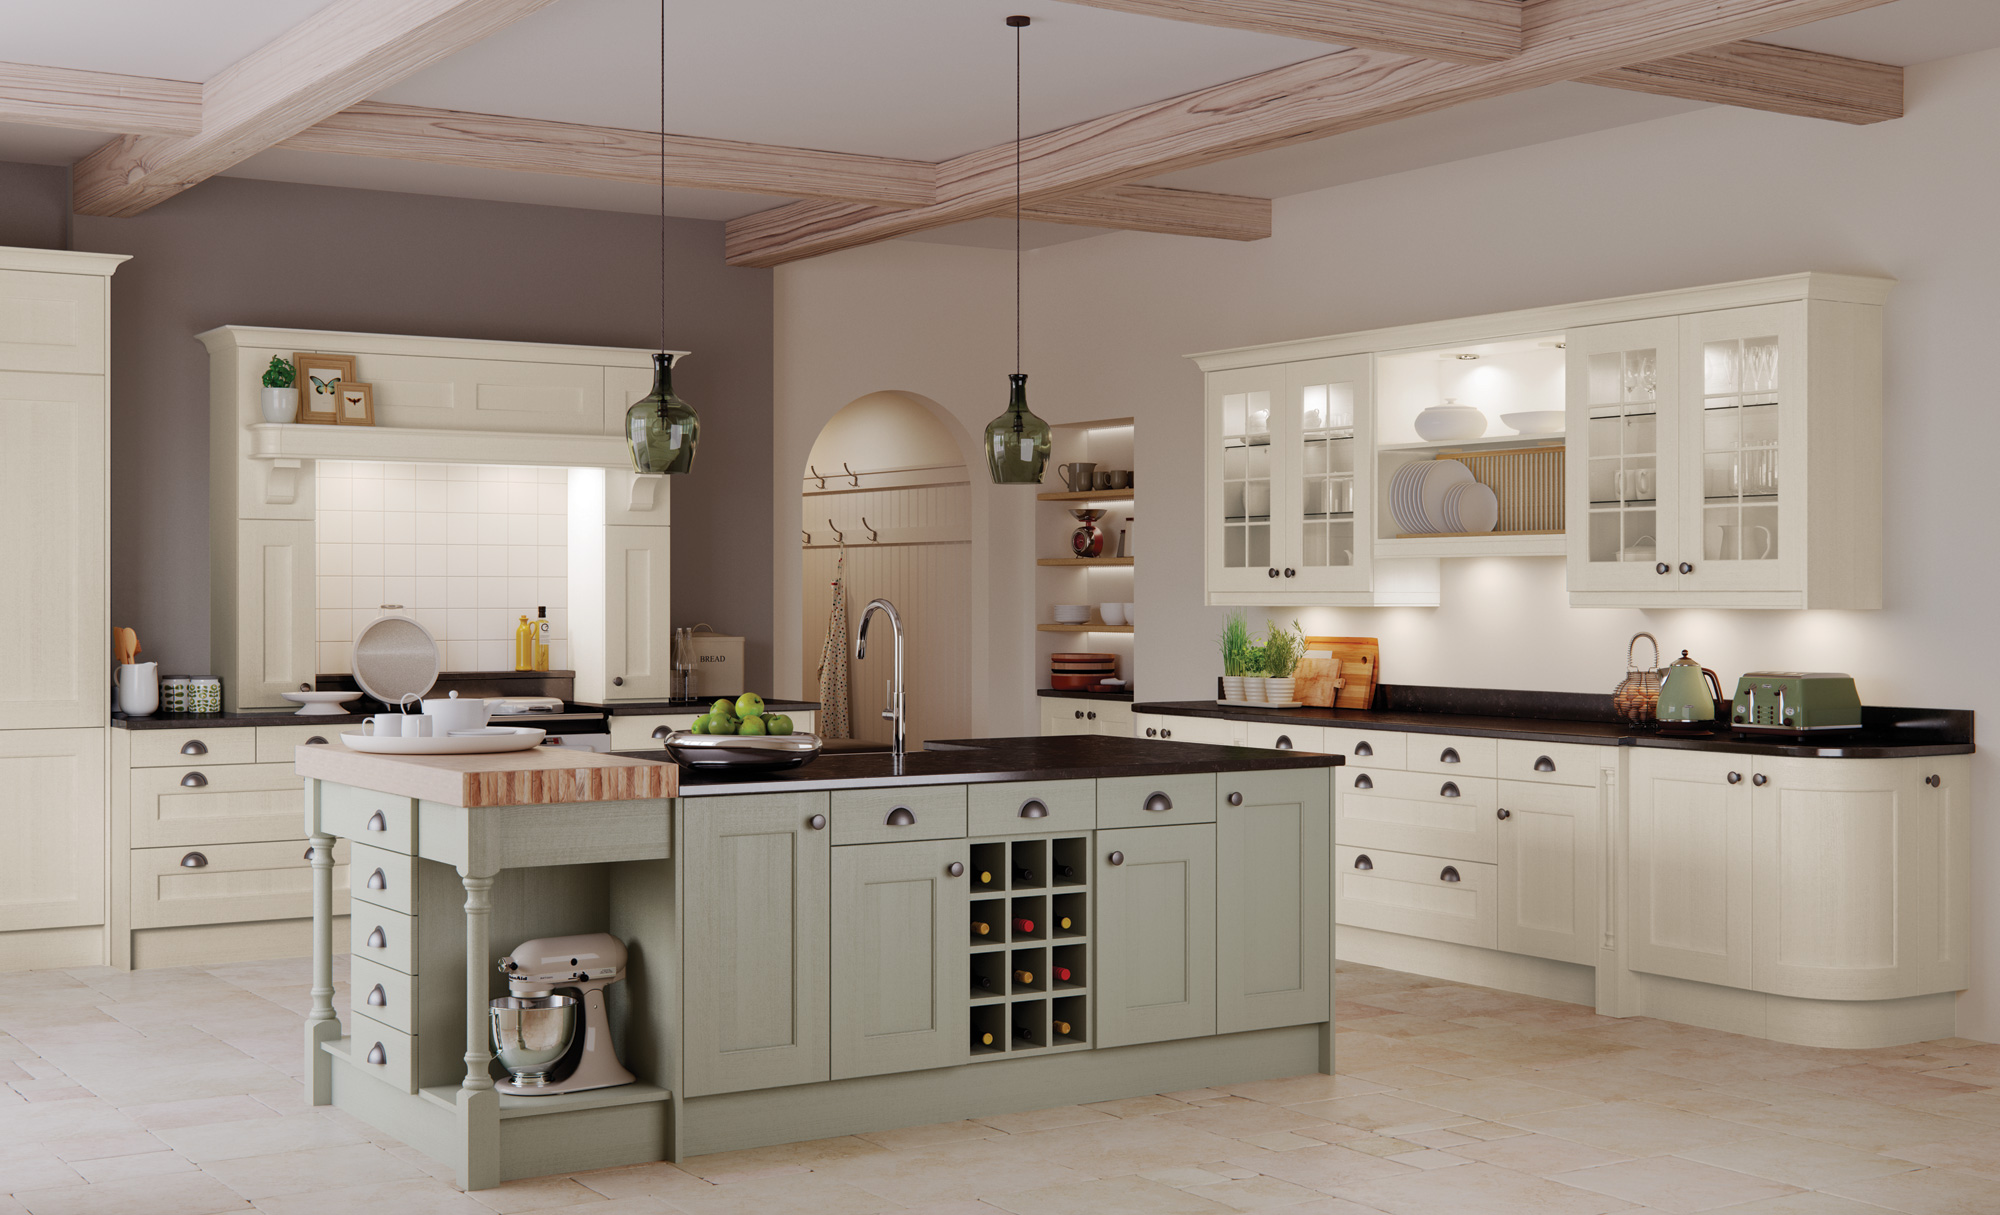 A classic, traditional country style kitchen, Wakefield in painted ivory & sage green